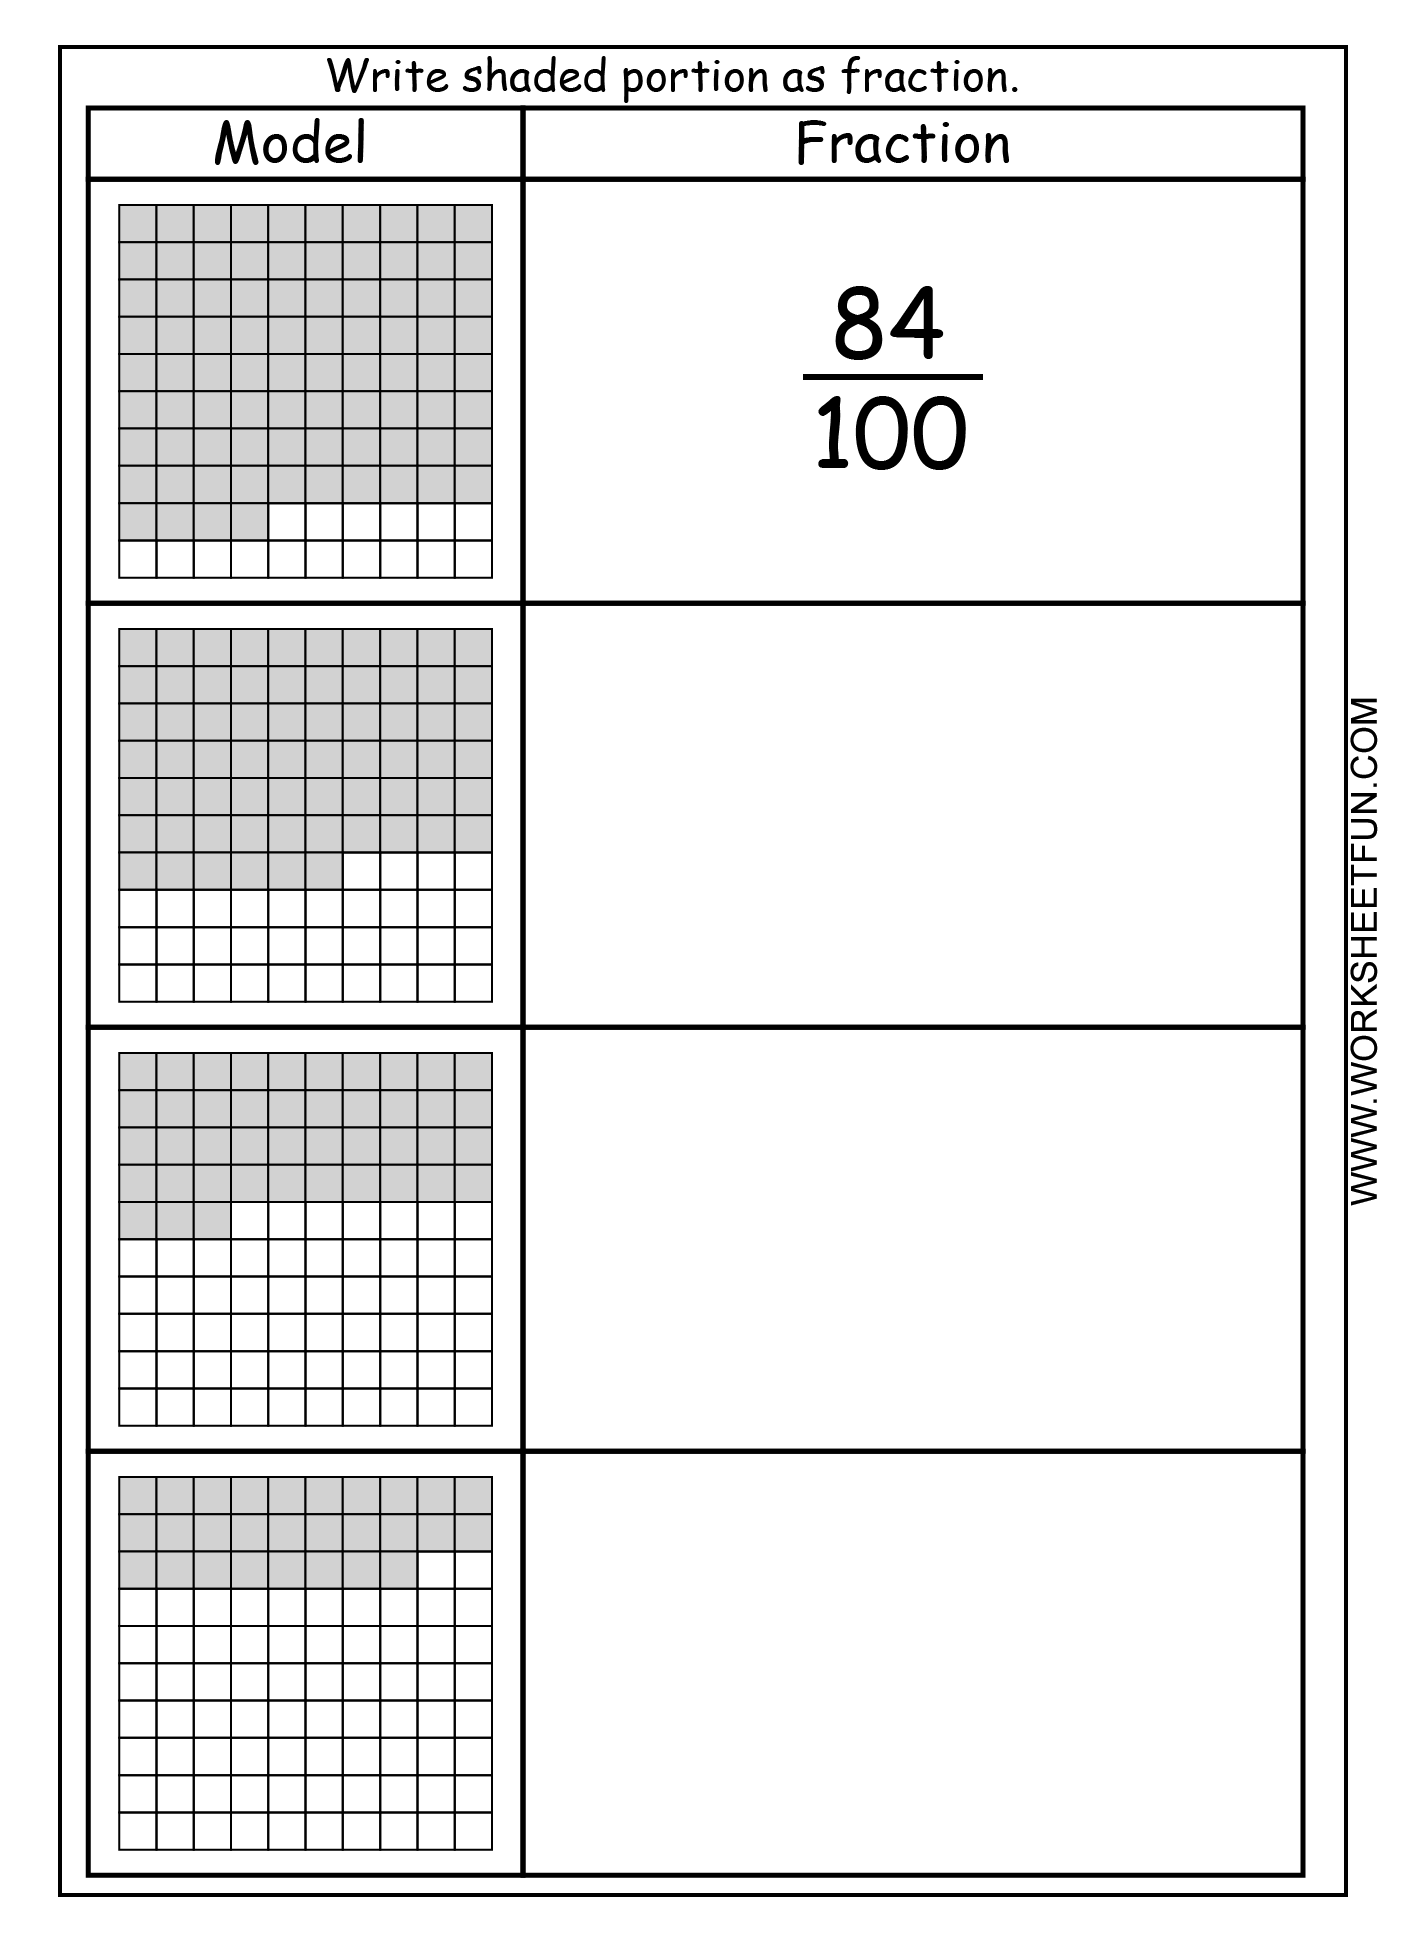 Fraction Model Hundredths 4 Worksheets Free